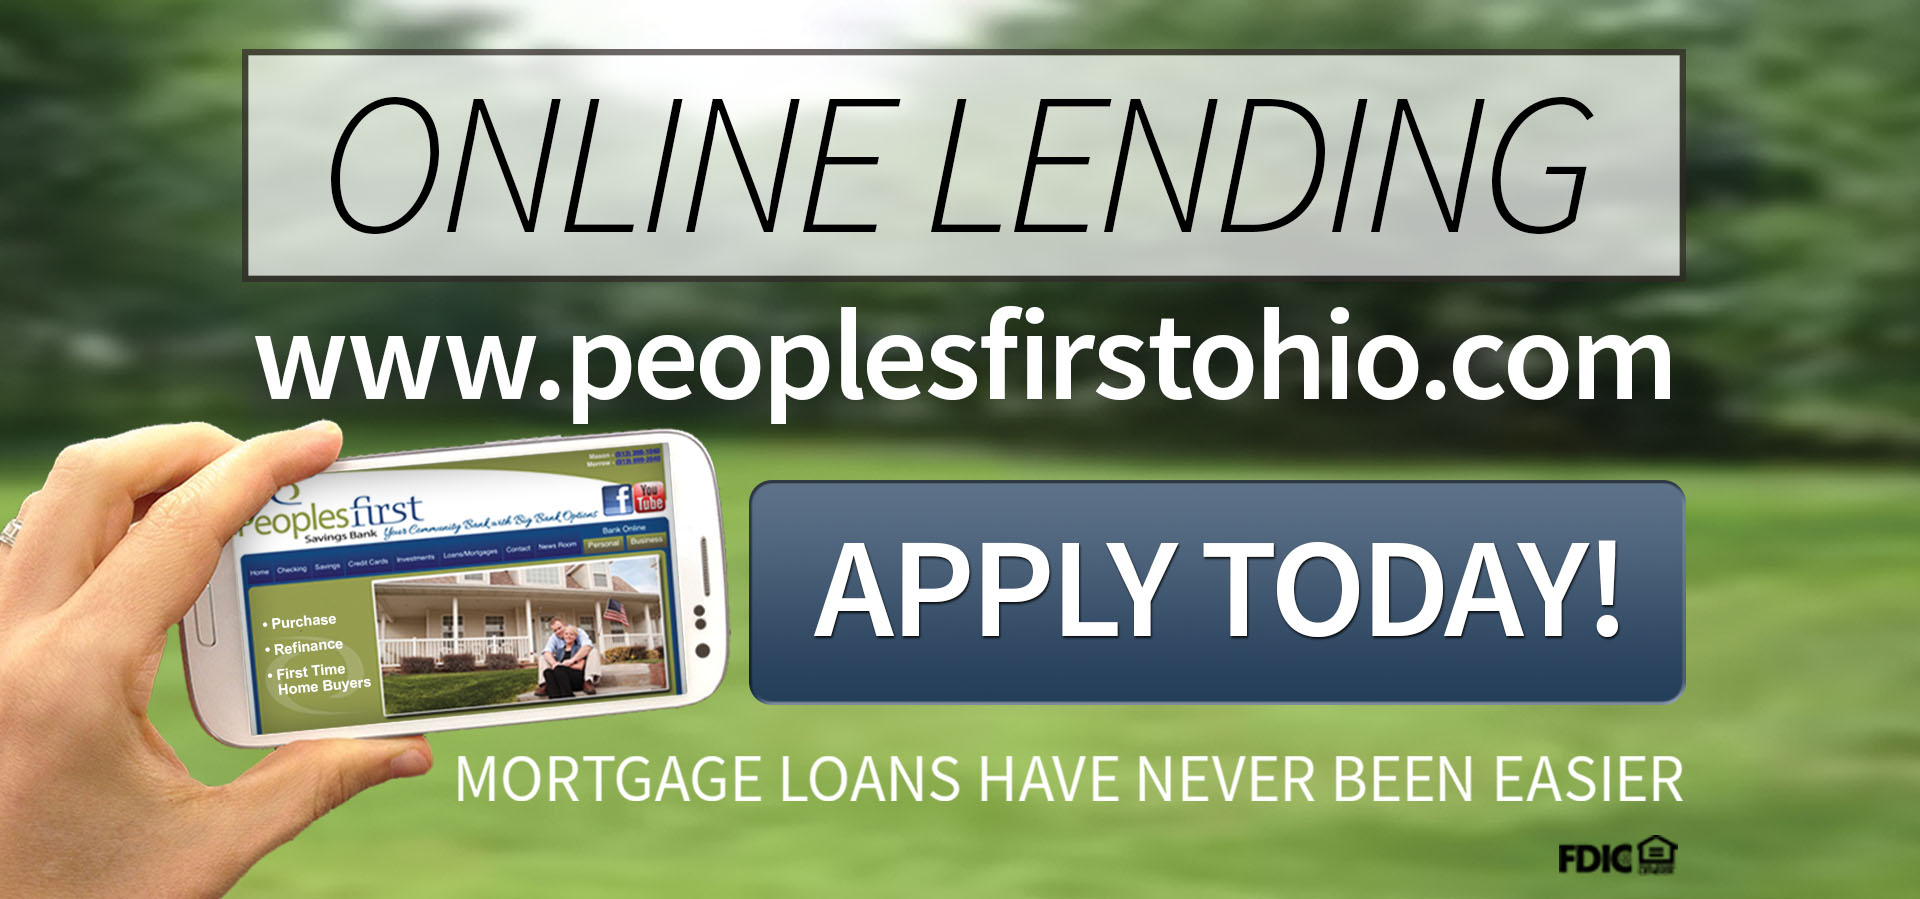 Online Lending, Mortgage Loans Have Never Been Easier